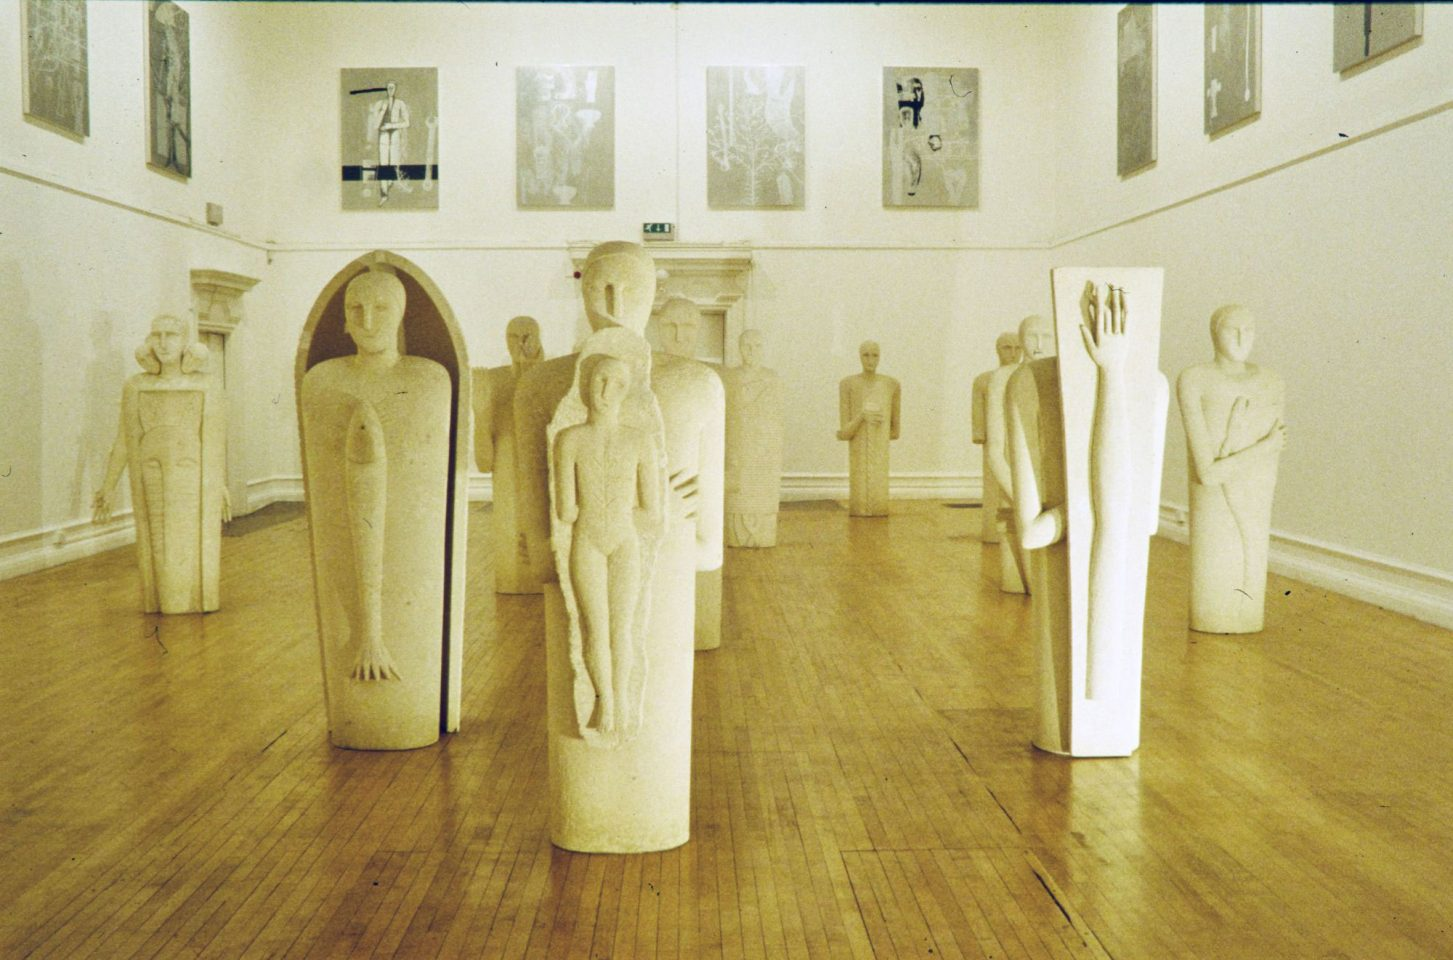 Installation view of Brian Eno & Mimmo Paladino's 1999 exhibition.